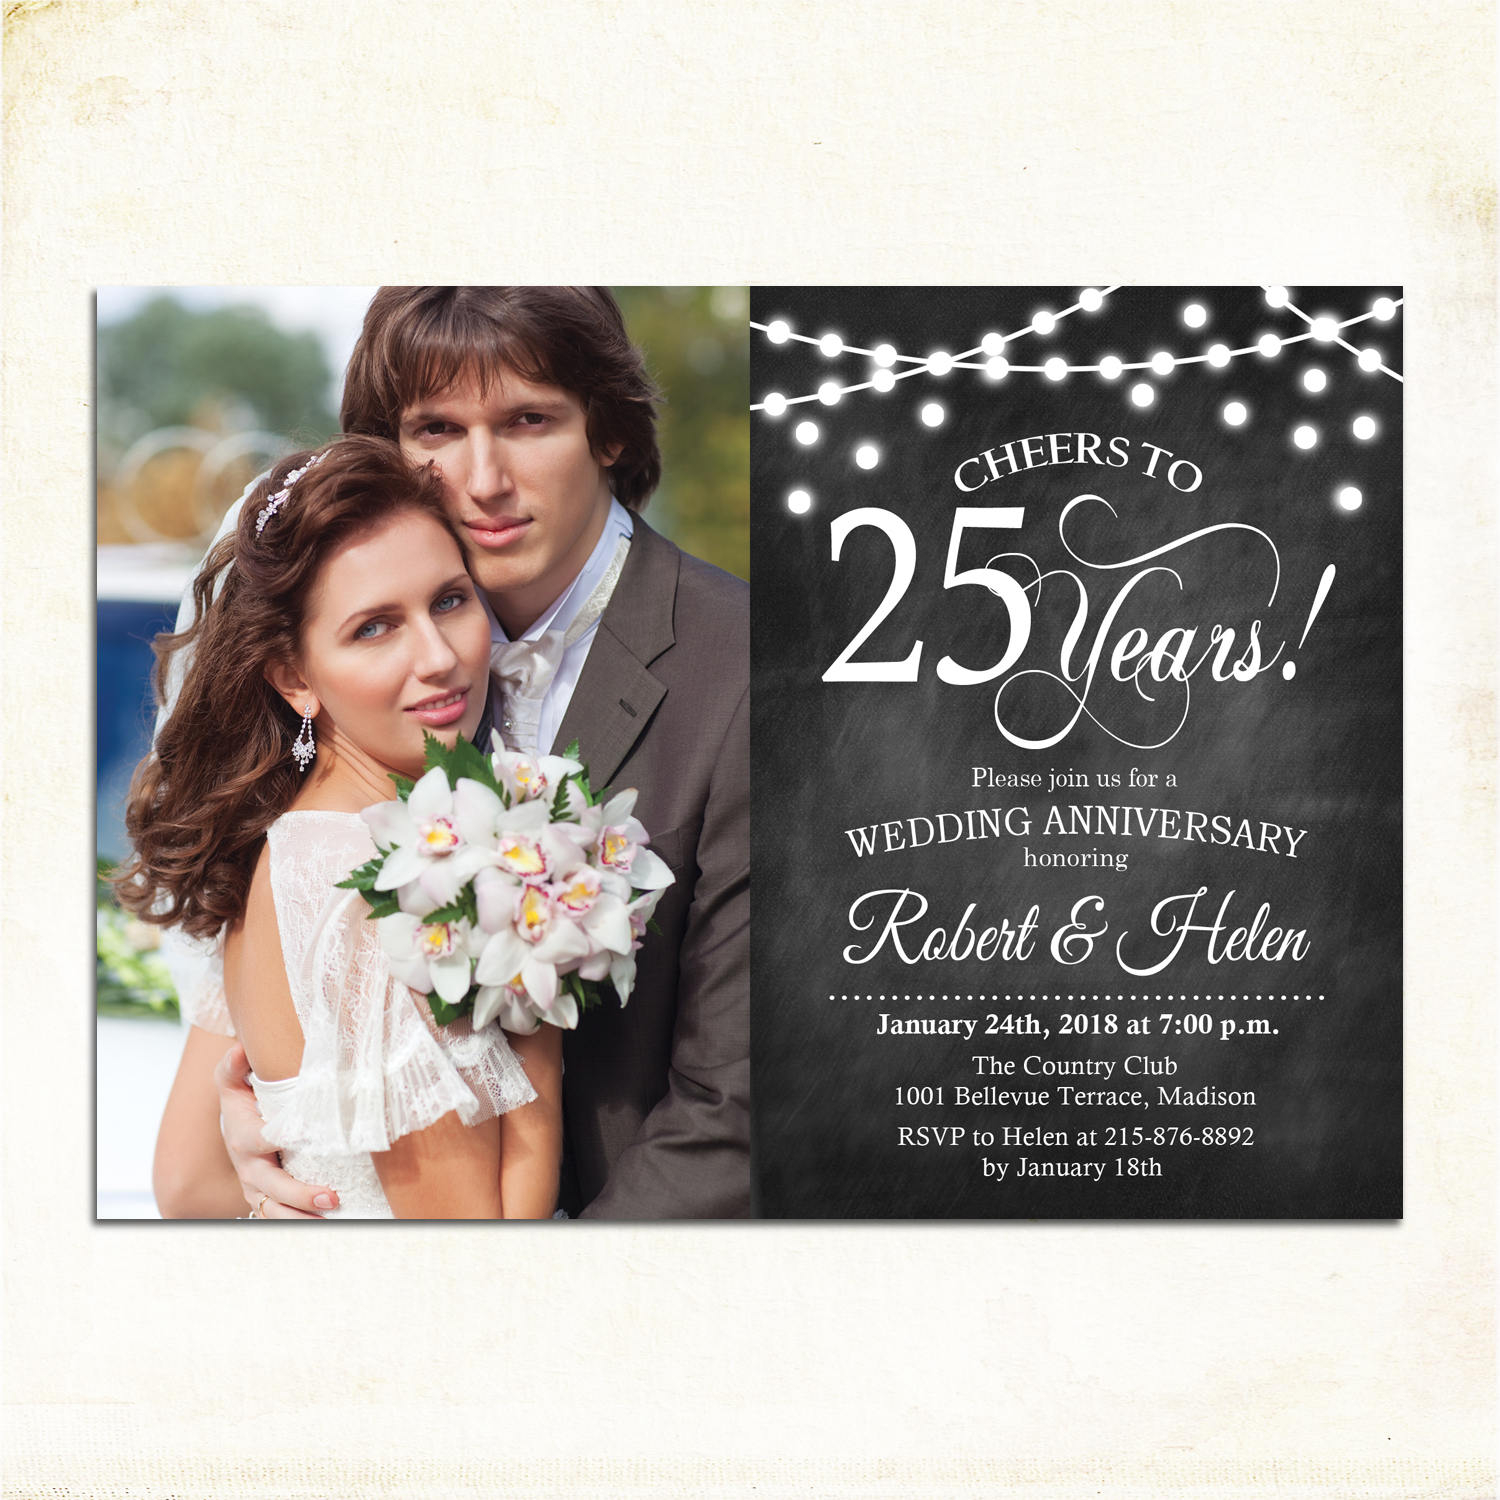 25th wedding anniversary invitation design